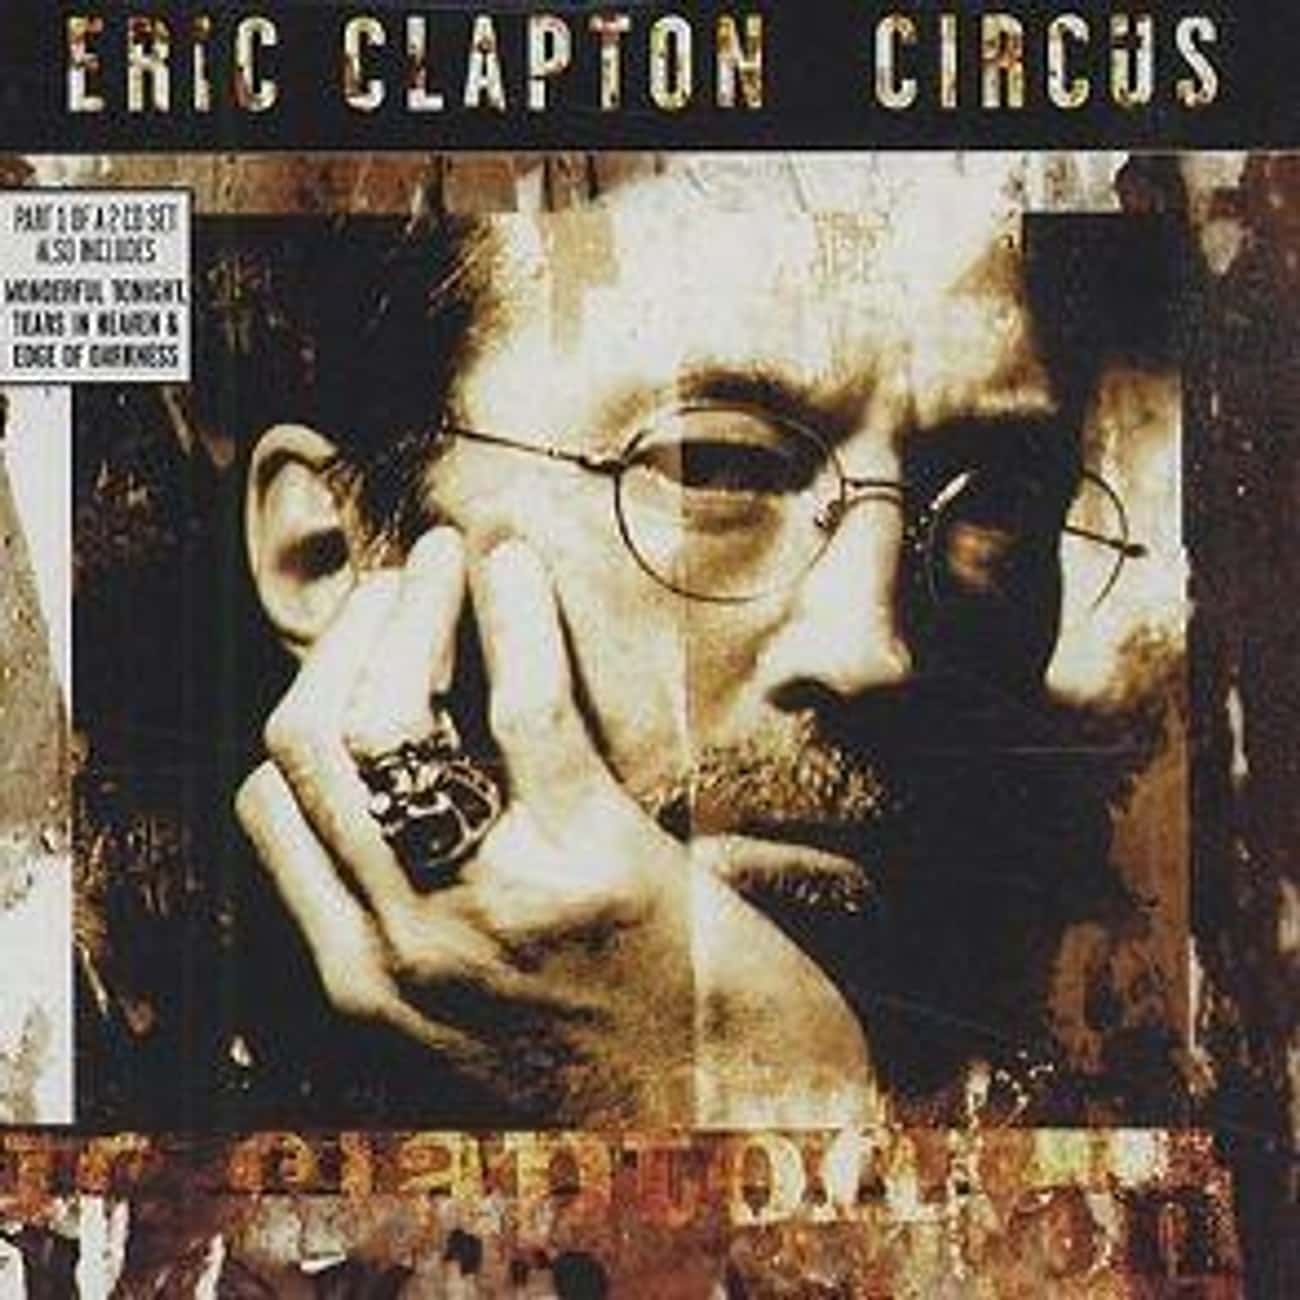 Eric Clapton - 'Circus' is listed (or ranked) 4 on the list 25 Depressing Stories Behind Some Of The Most Popular Songs In Modern History